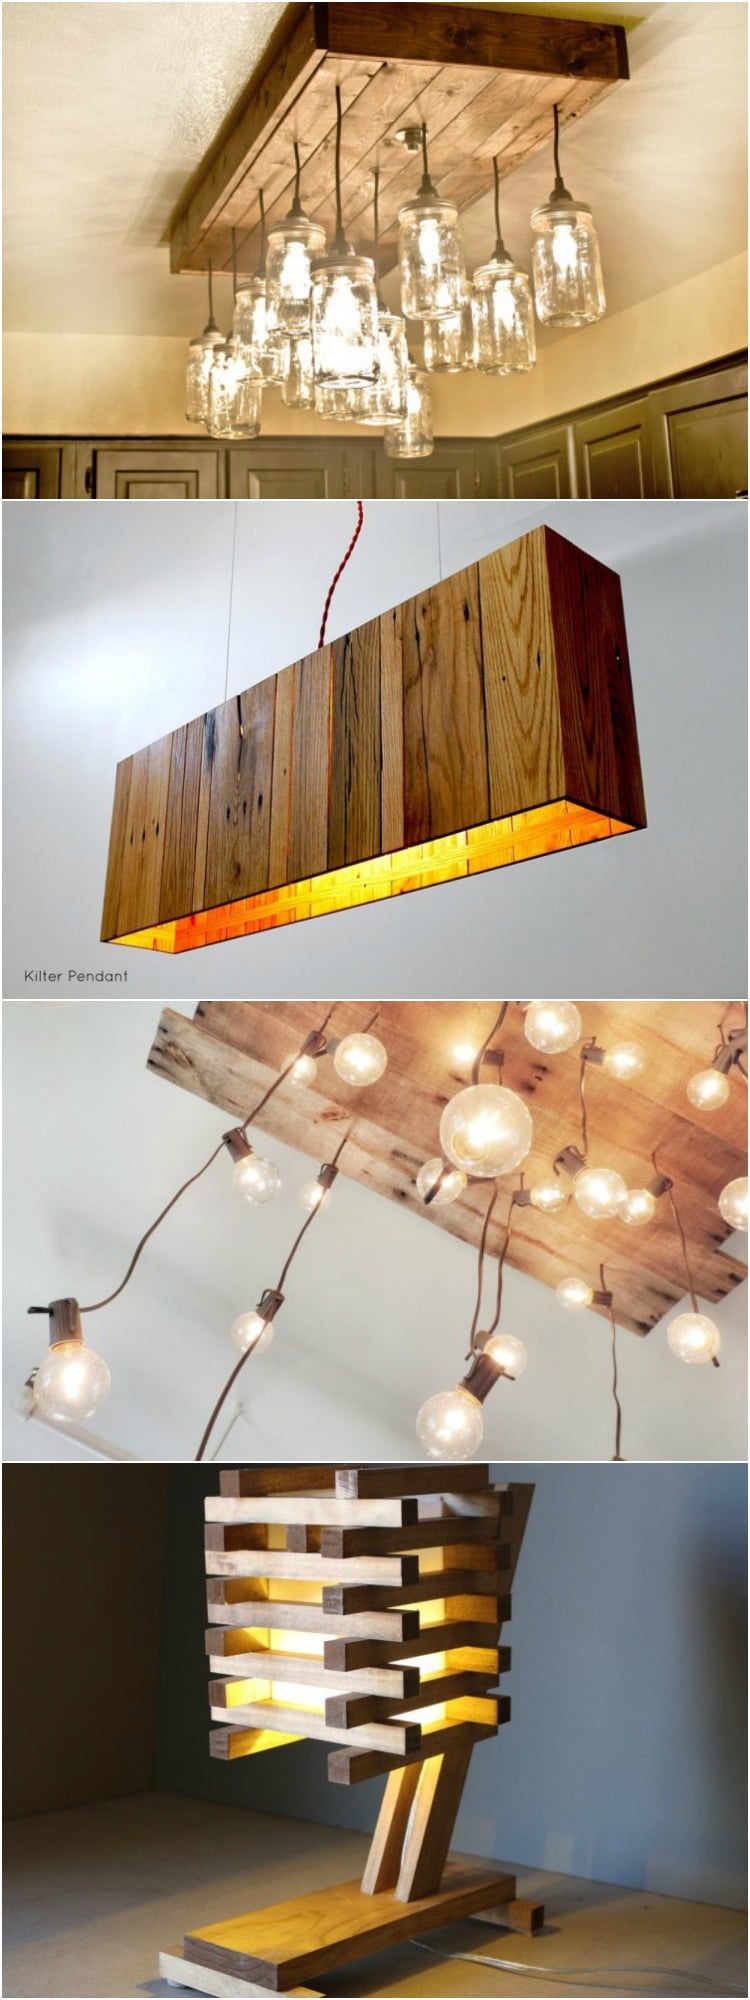 Wood is maybe the most used material in home decor designing, but it could be expensive... So why not use a recycled wood pallet to create your own trendy lamp! Here you will find 10 of the best inventive ideas to recycle wood pallets into lamps, take some inspiration... #wood #pallet #diy #recycle #lamp #lighting #woodworking #woodworkingprojects #homedecor #idlights